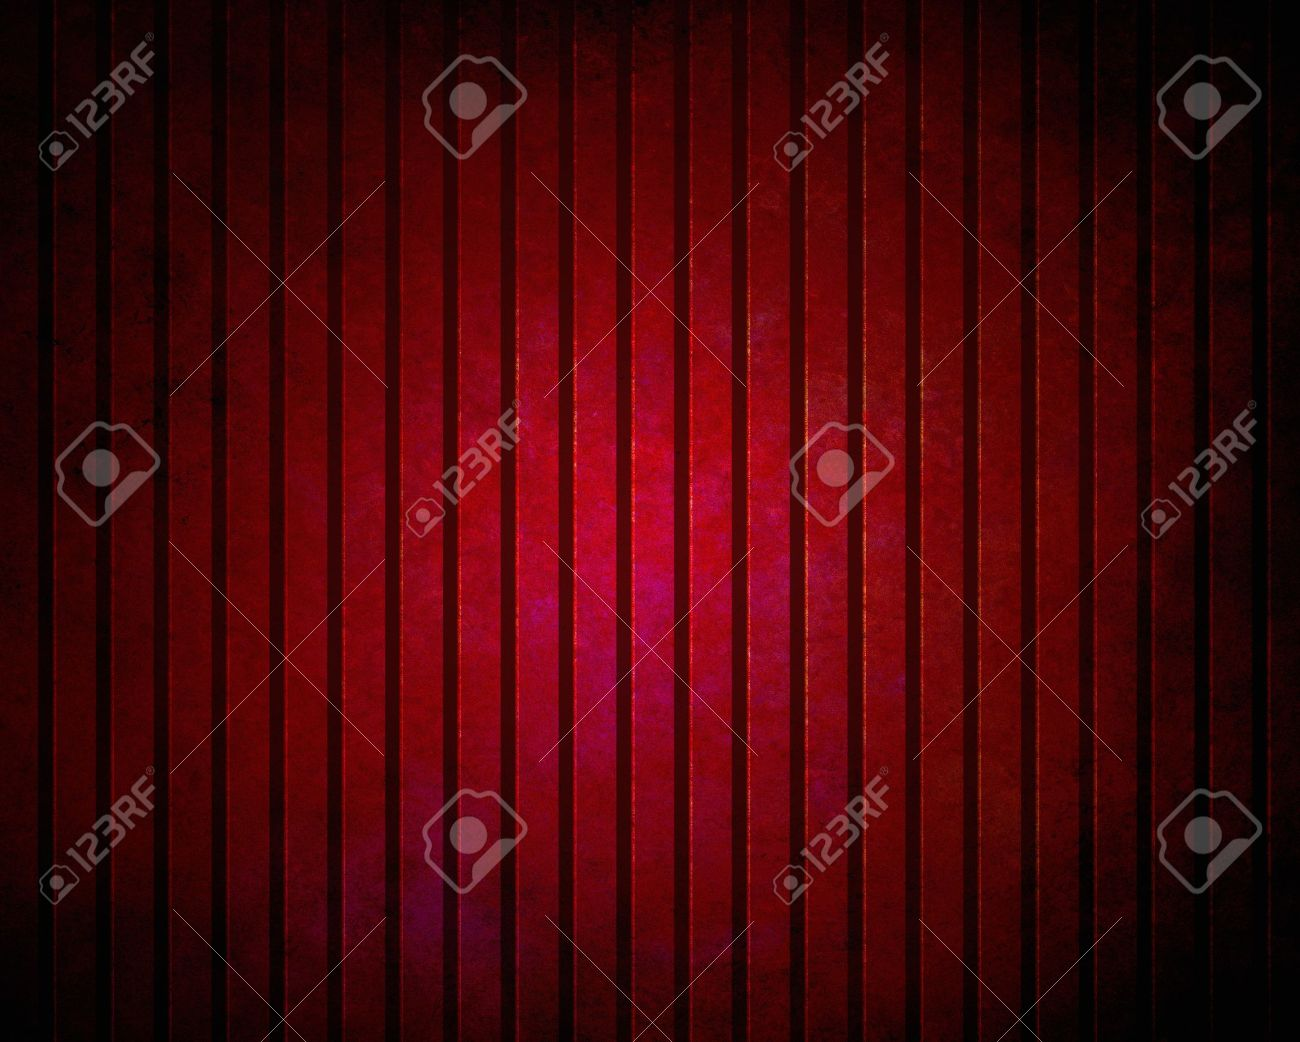 abstract striped background red pink line design element for graphic art use, vertical lines with burgundy vintage texture background pinstripe pattern, banners, brochures, website template designs Stock Photo - 20161188